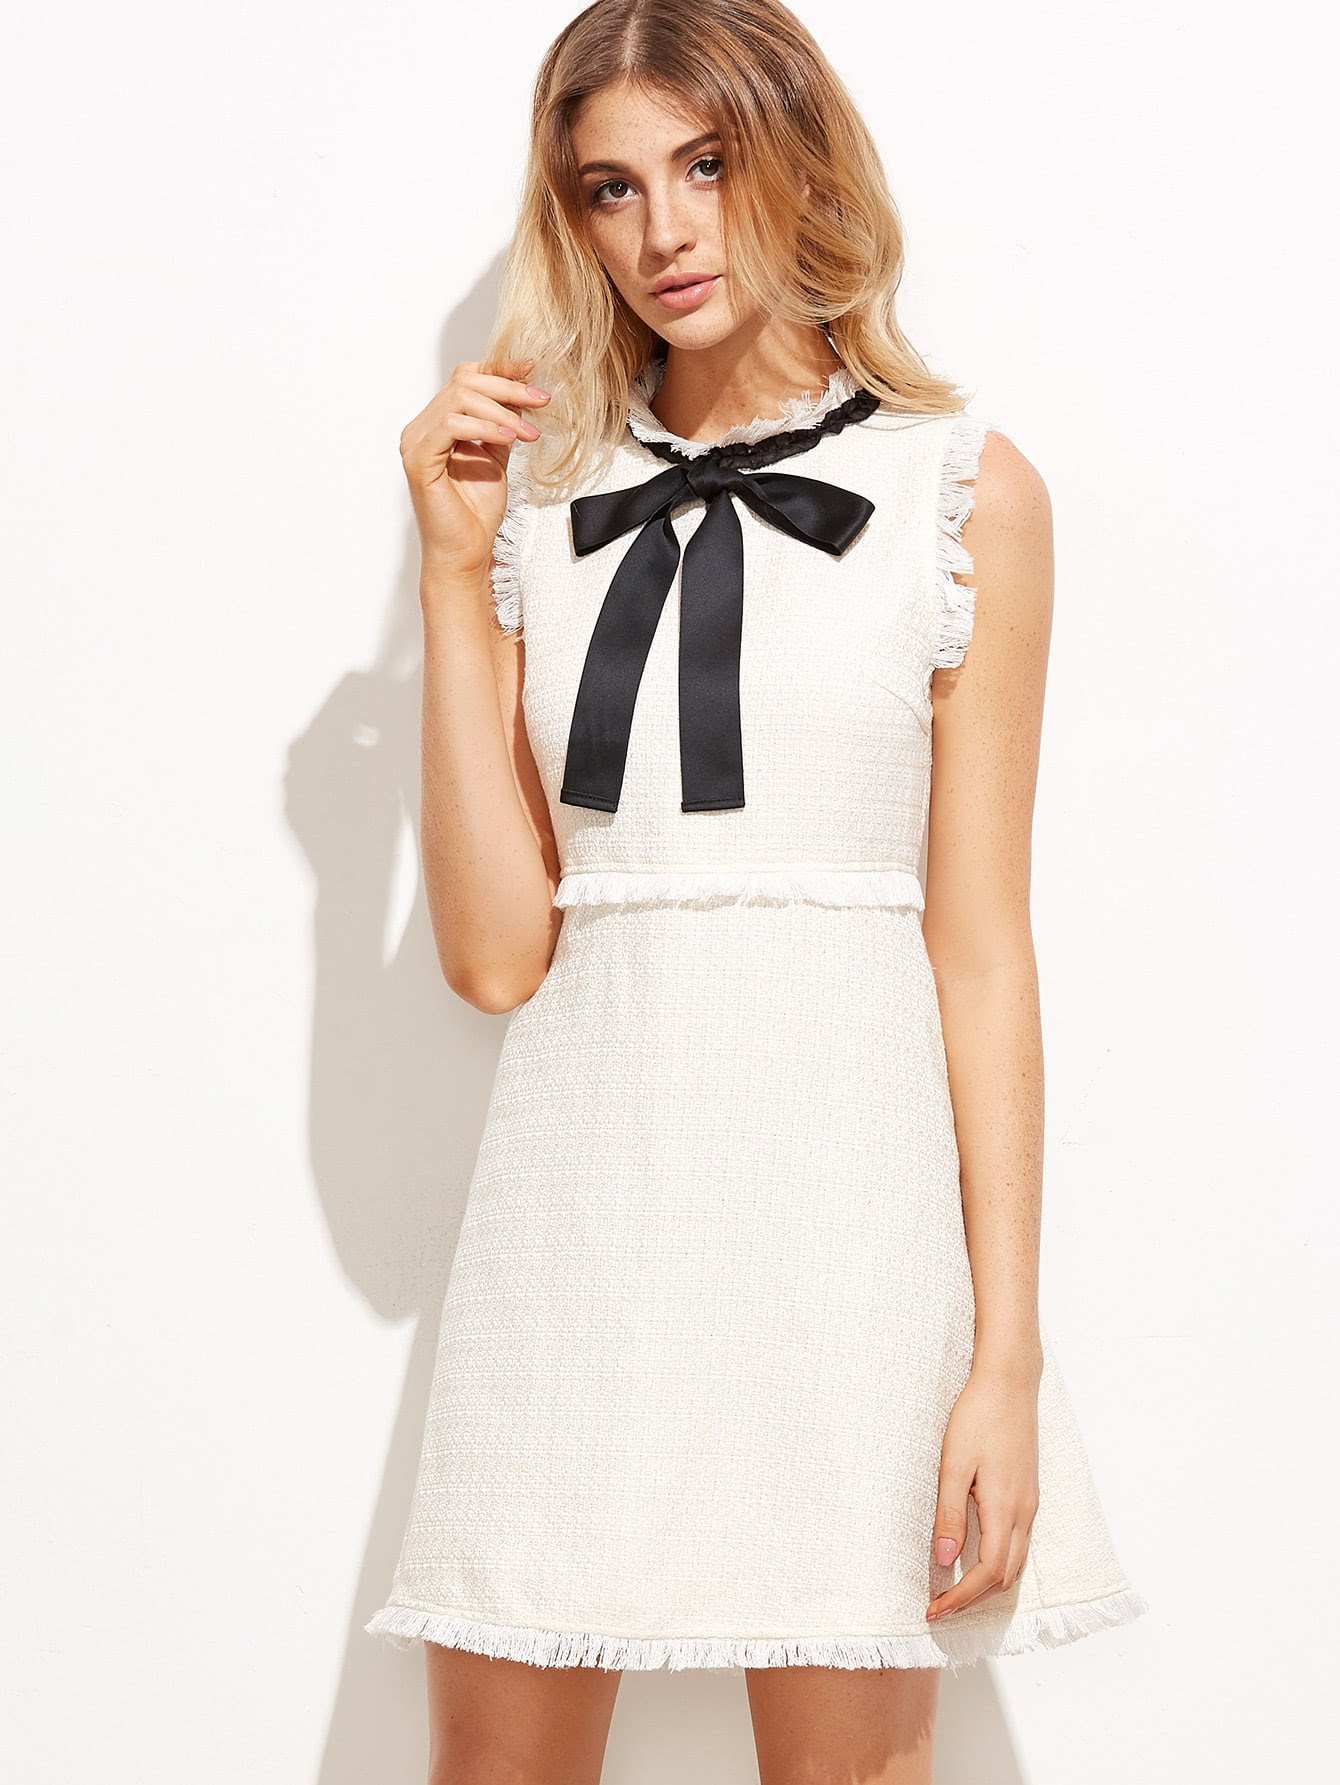 http://www.shein.com/White-Bow-Tie-Neck-Frayed-Trim-Tweed-Dress-p-320530-cat-1727.html?aff_id=8630